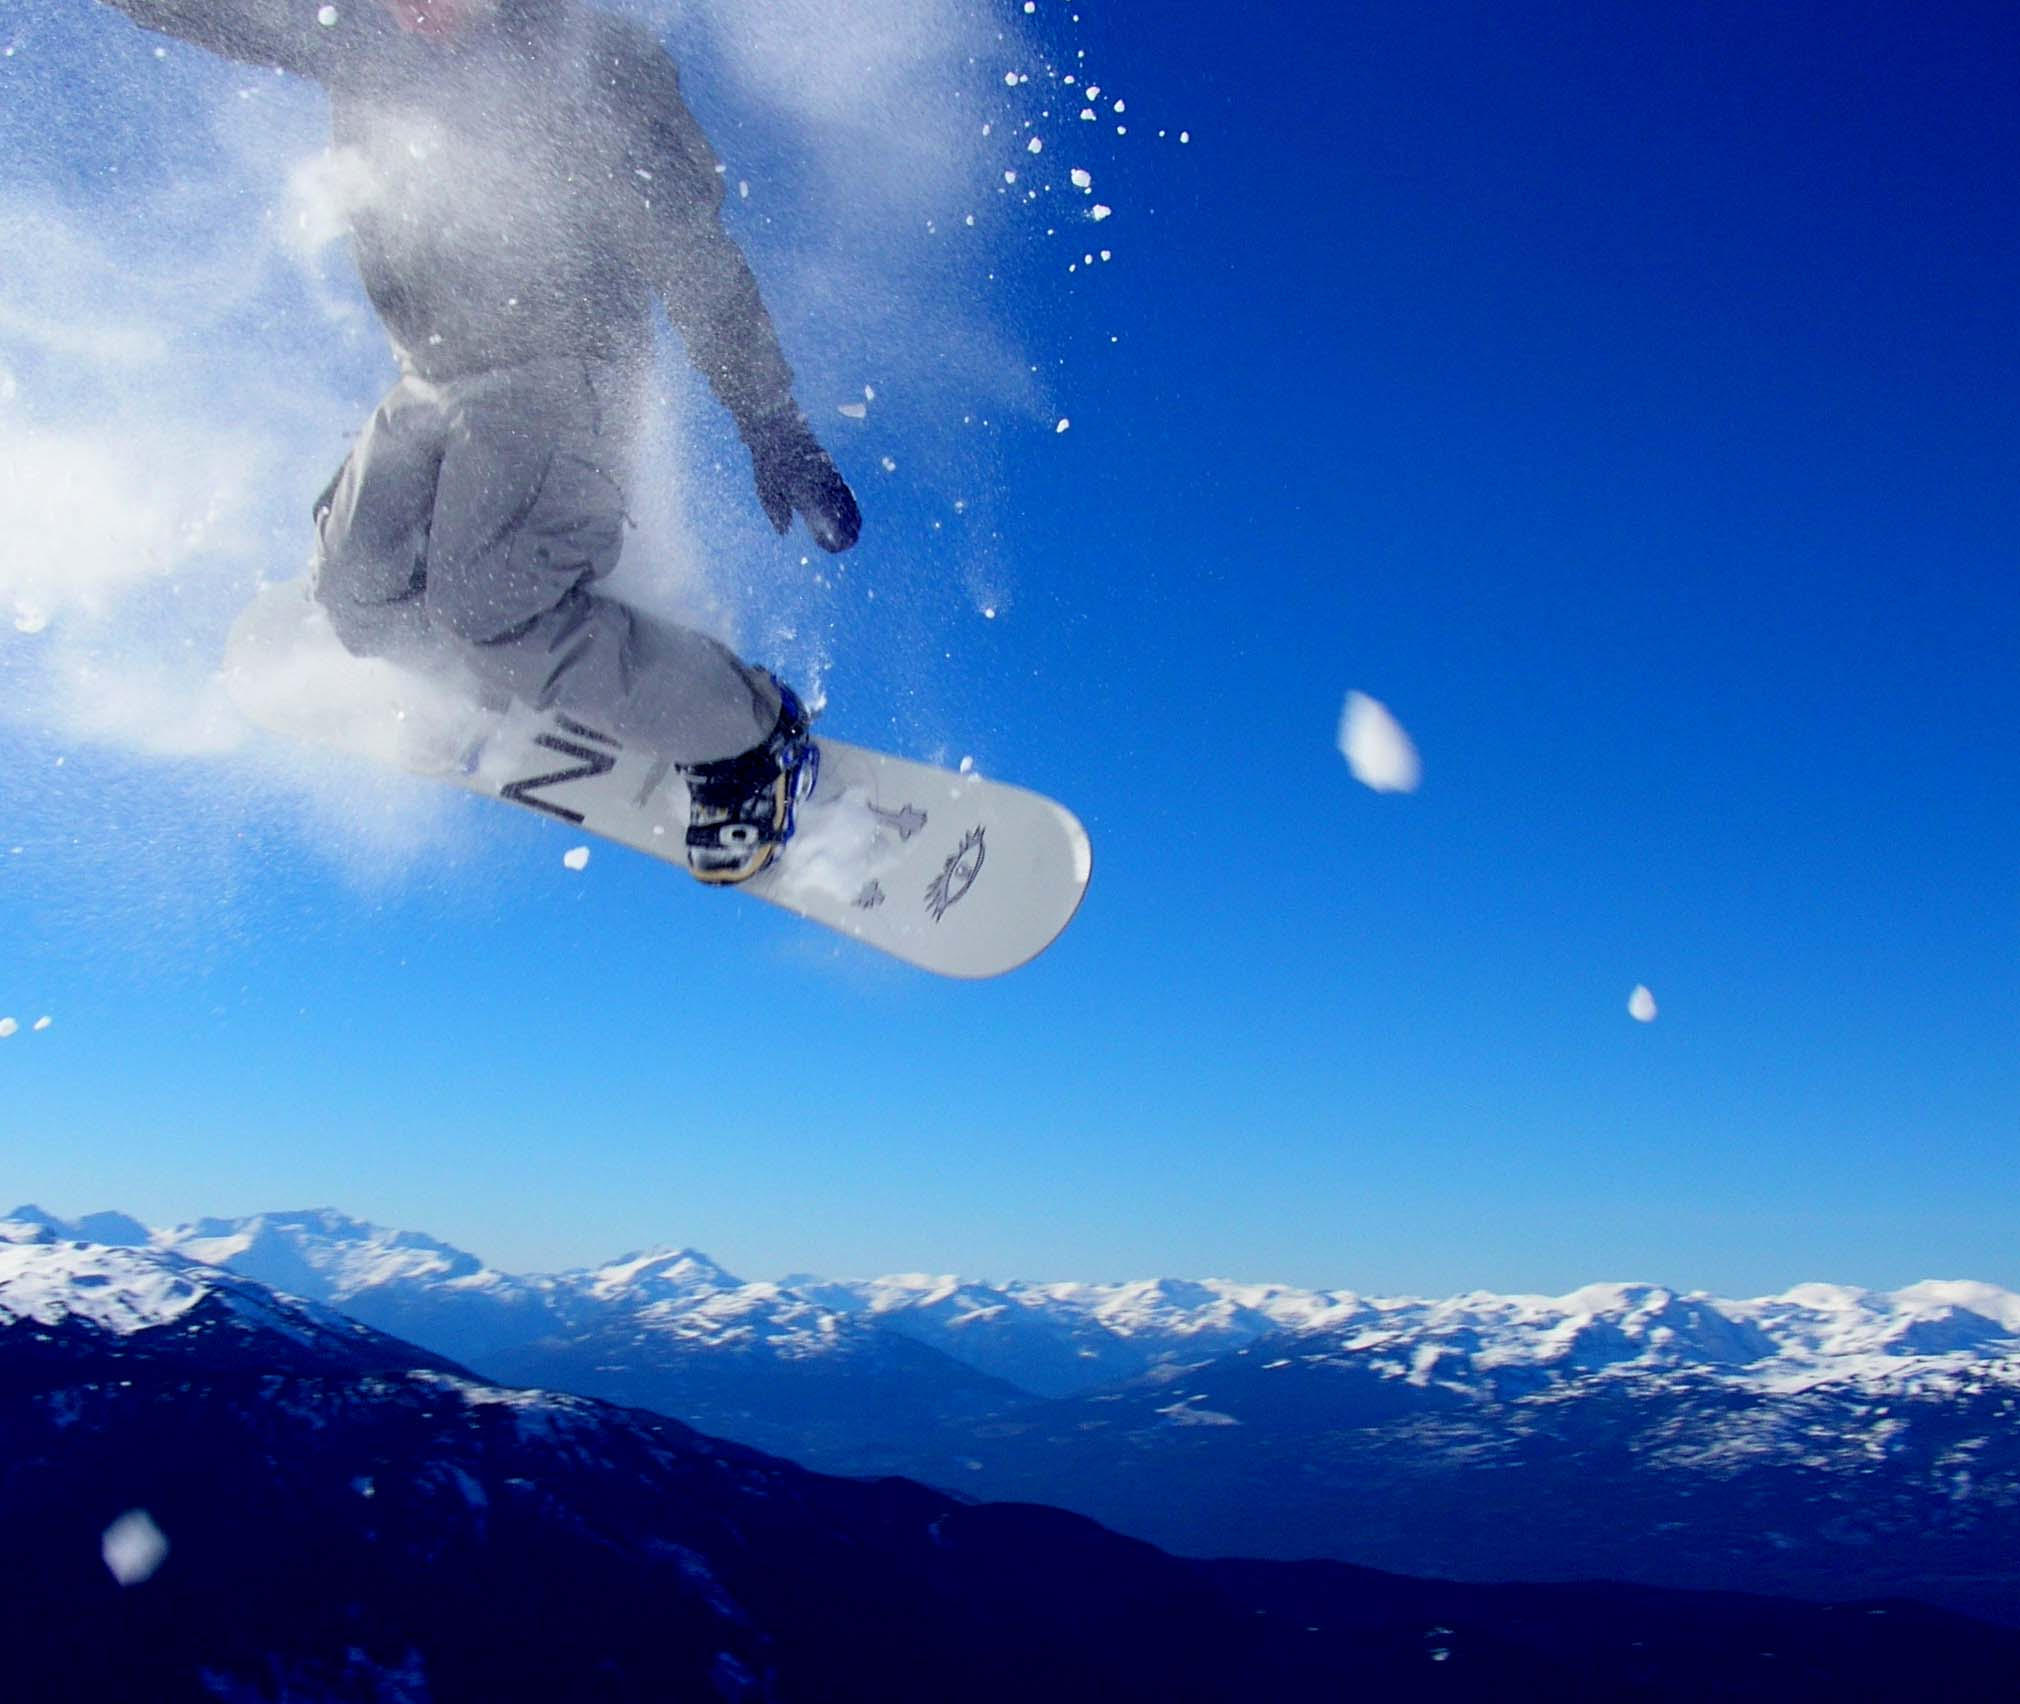 headless snowboarder by caitmerry